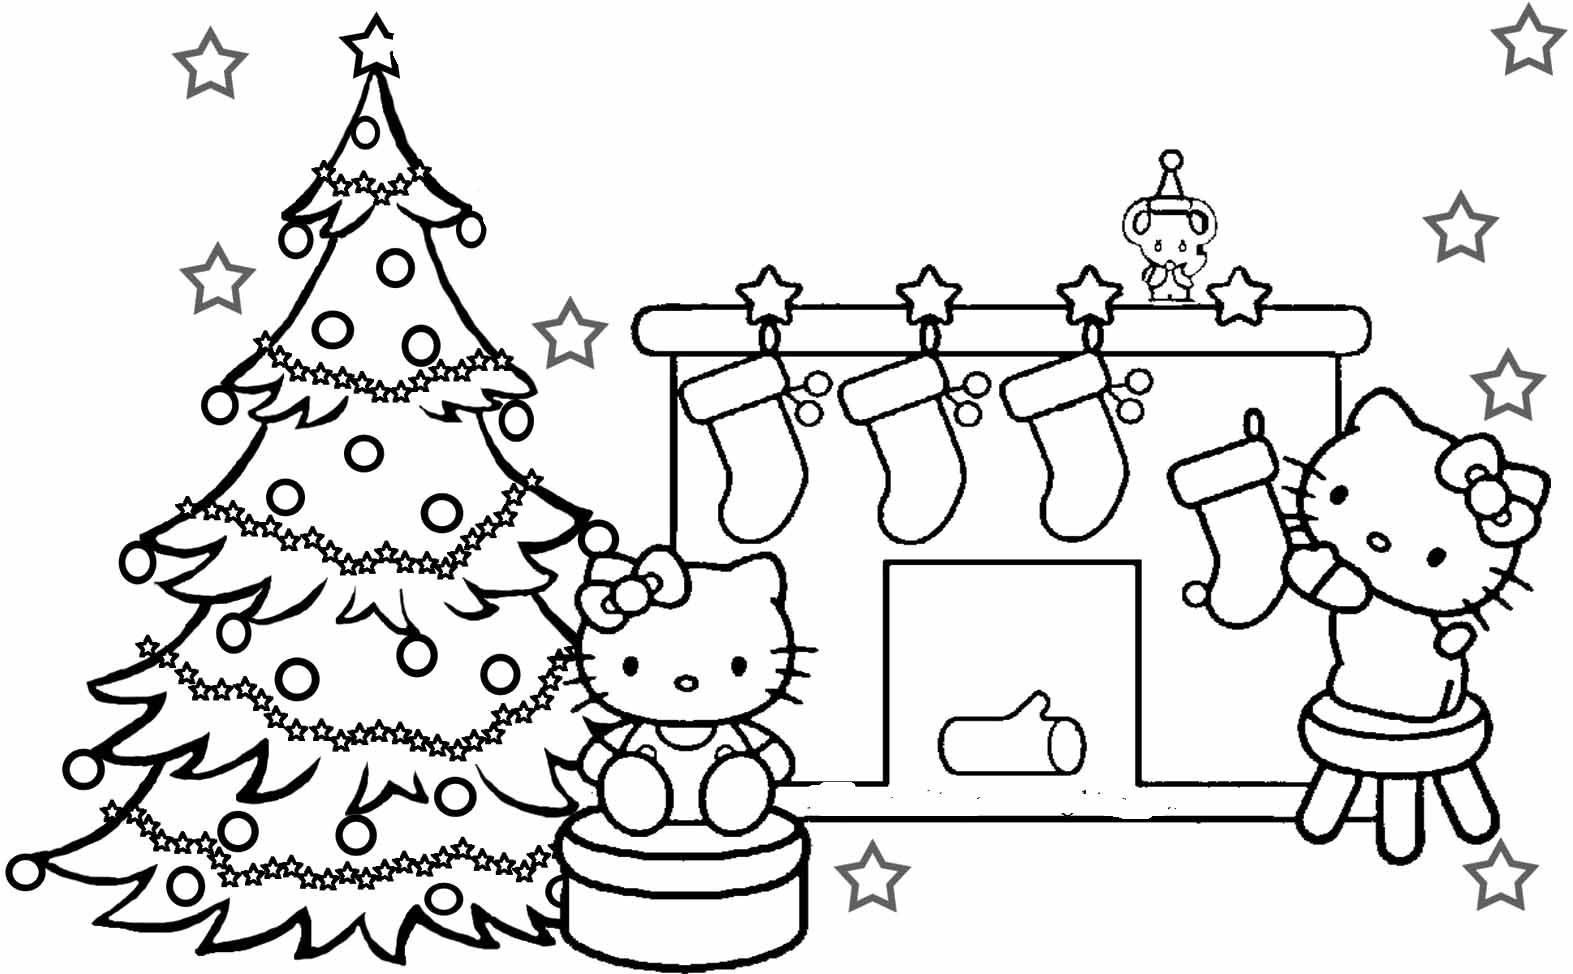 Christmas Kitten Coloring Pages With Hello Kitty To Print Great OwlGalliz